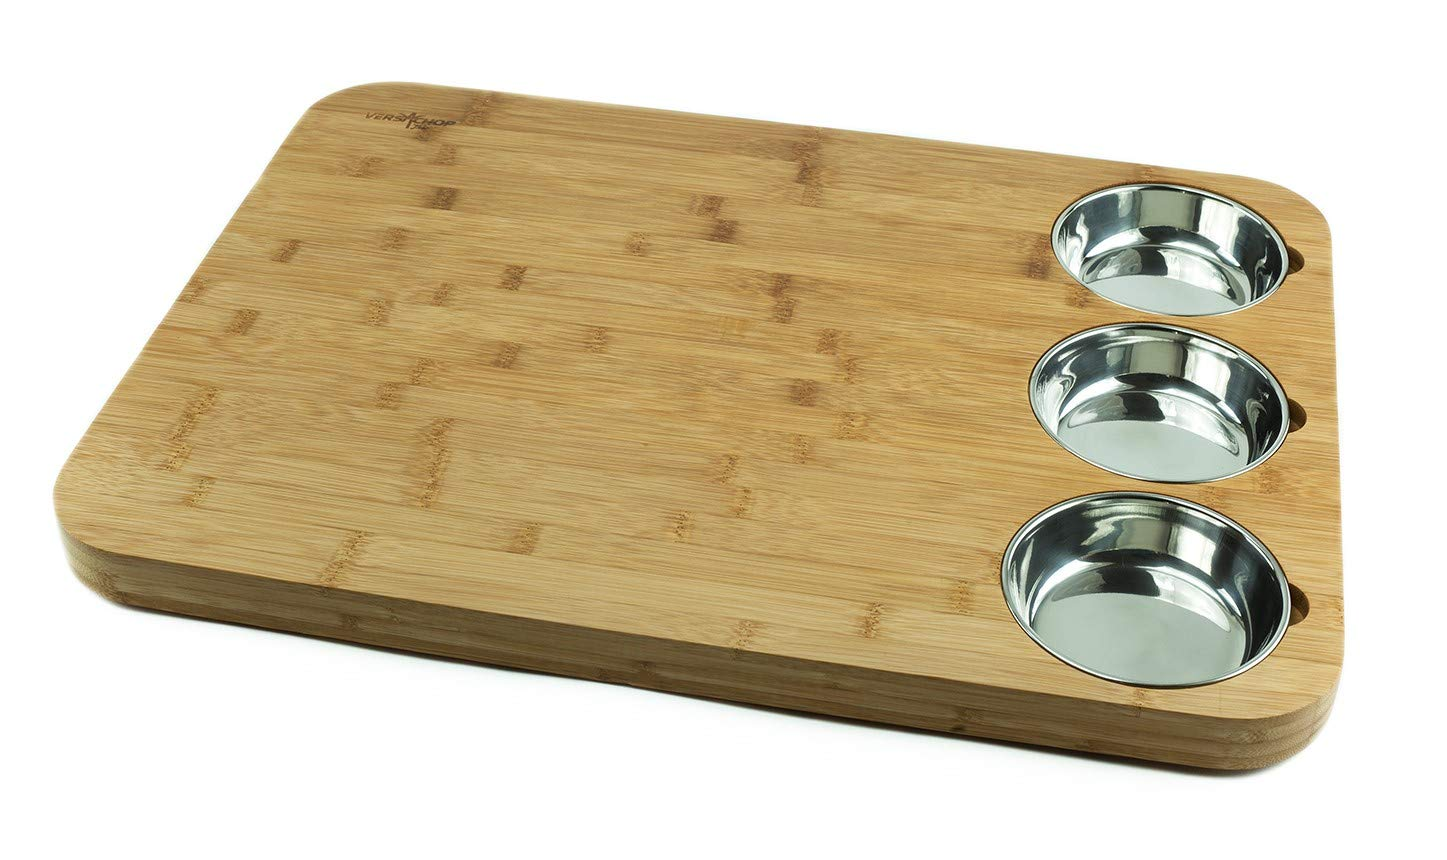 VERSACHOP Trio, Extra Large 22'' X 16'' Kitchen Cutting Board and Butcher Block made from Totally Natural Organic Moso Bamboo with Three Stainless Steel Bowls by VersaChop (Image #1)